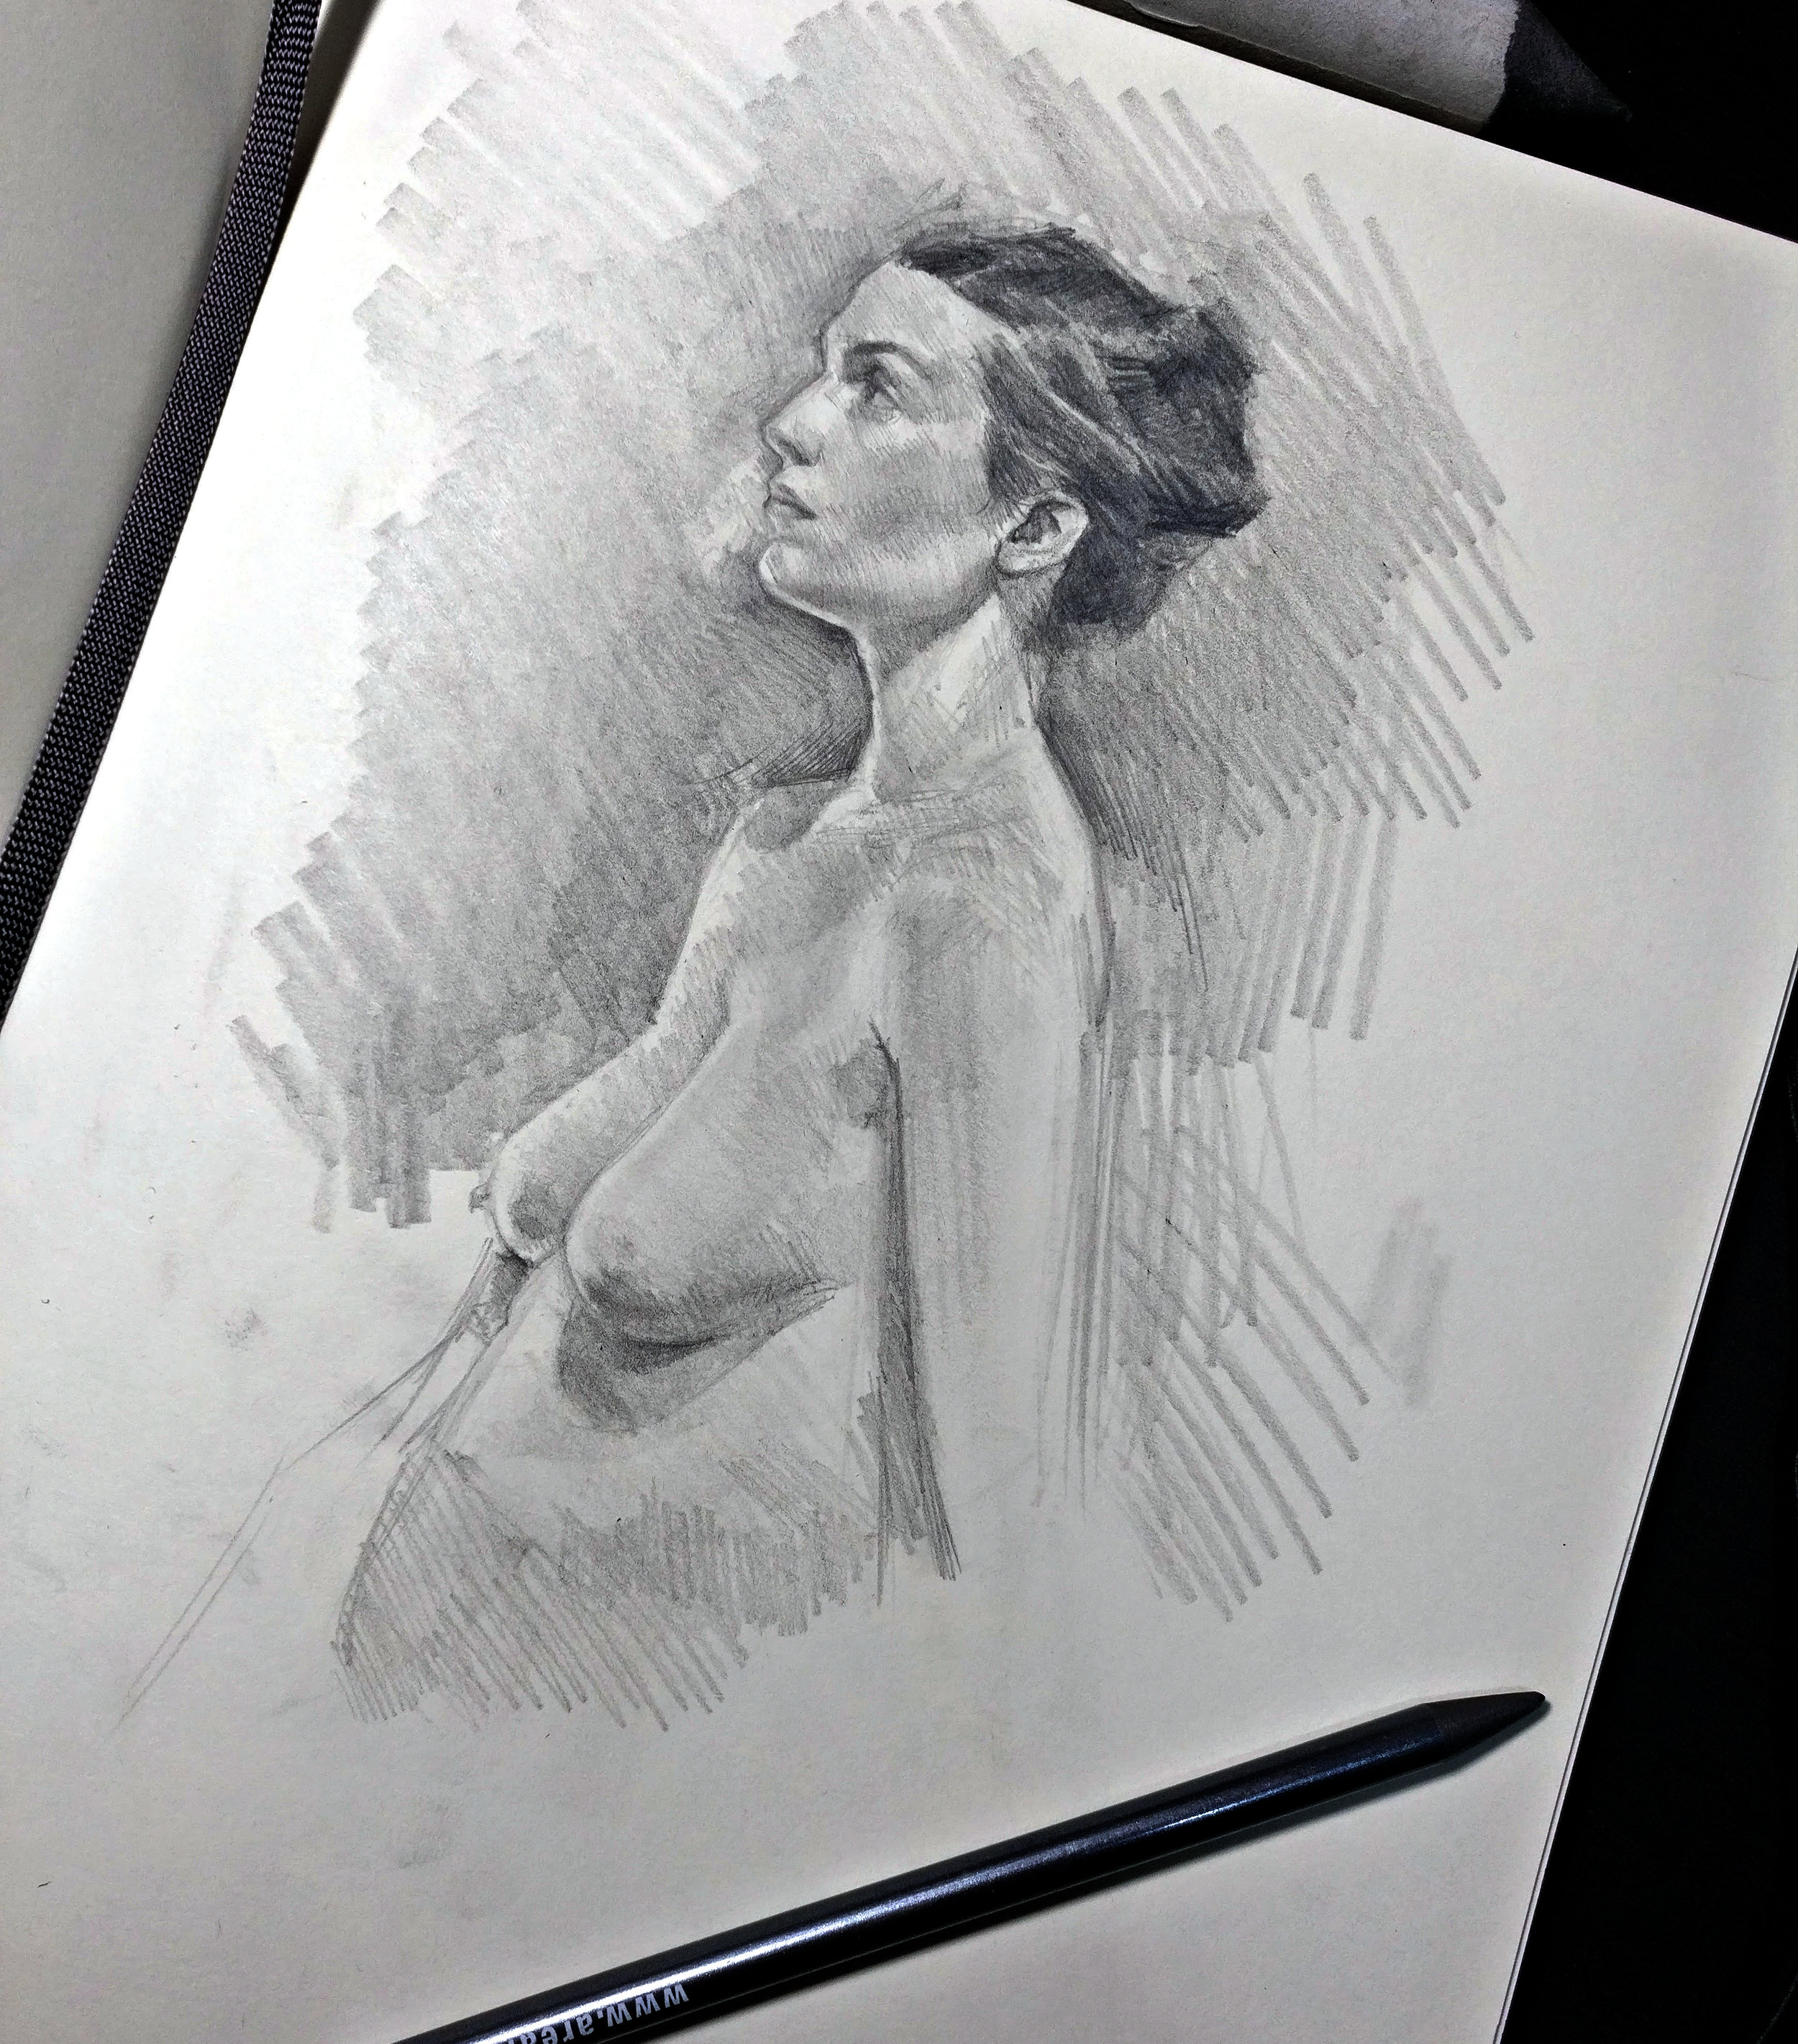 from my last live drawing session.